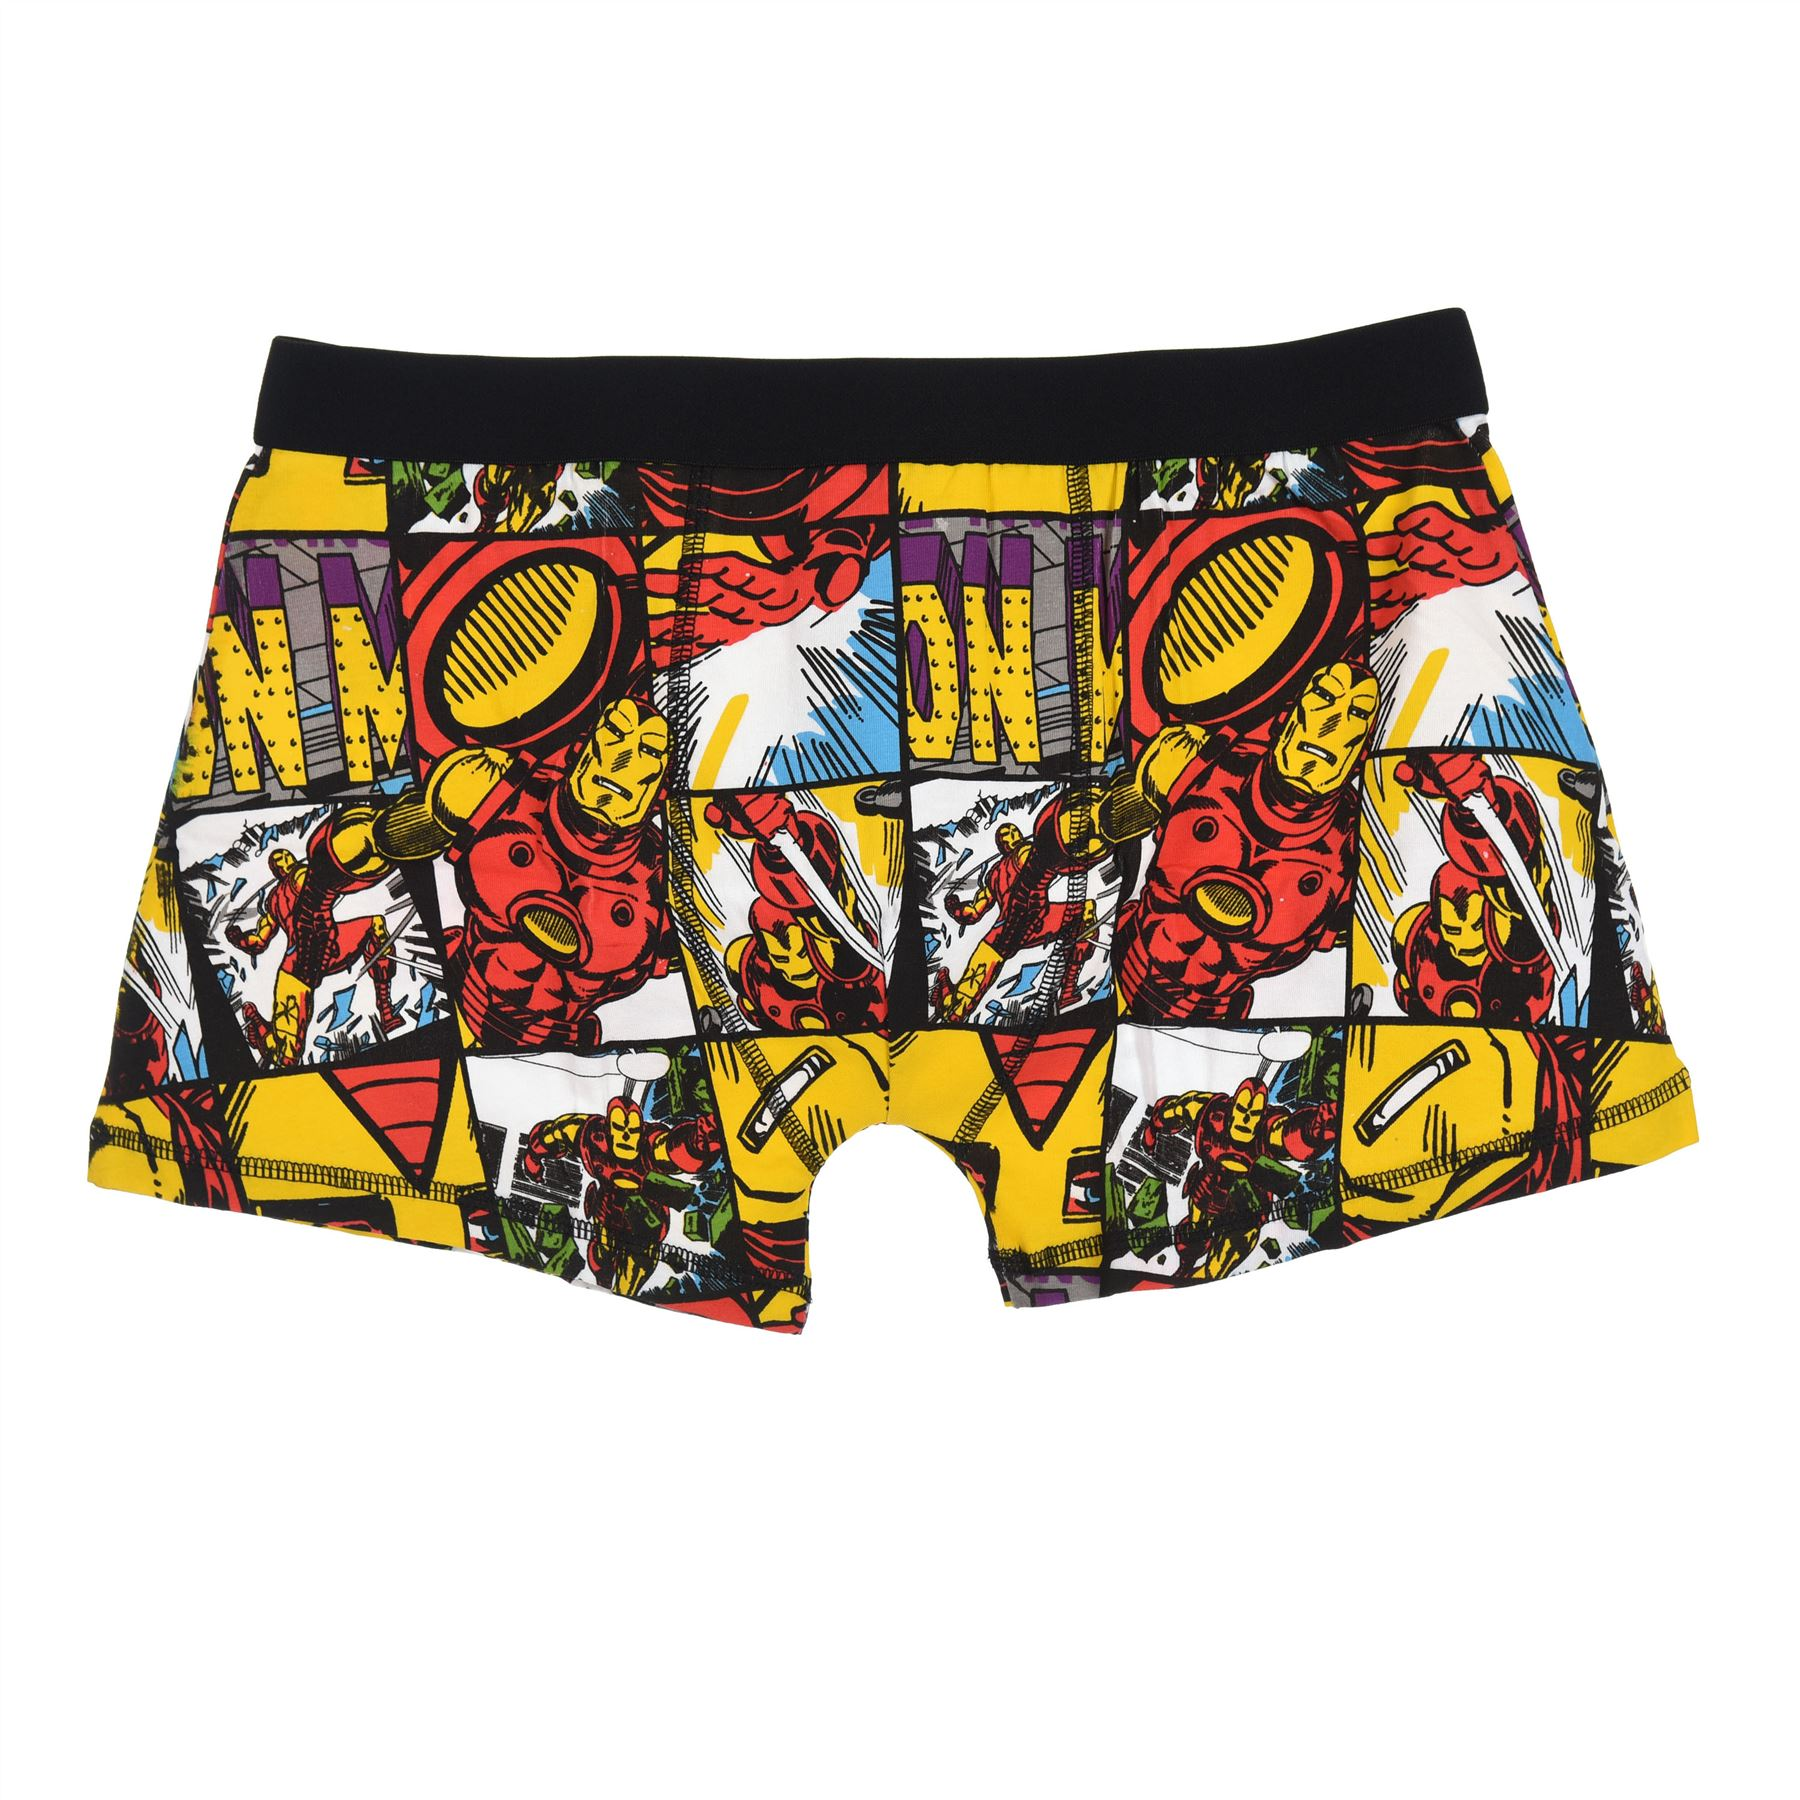 Mens-Official-Character-Trunks-Boxer-Shorts-Boxers-Underwear-2-Pack-Size-S-XL thumbnail 30